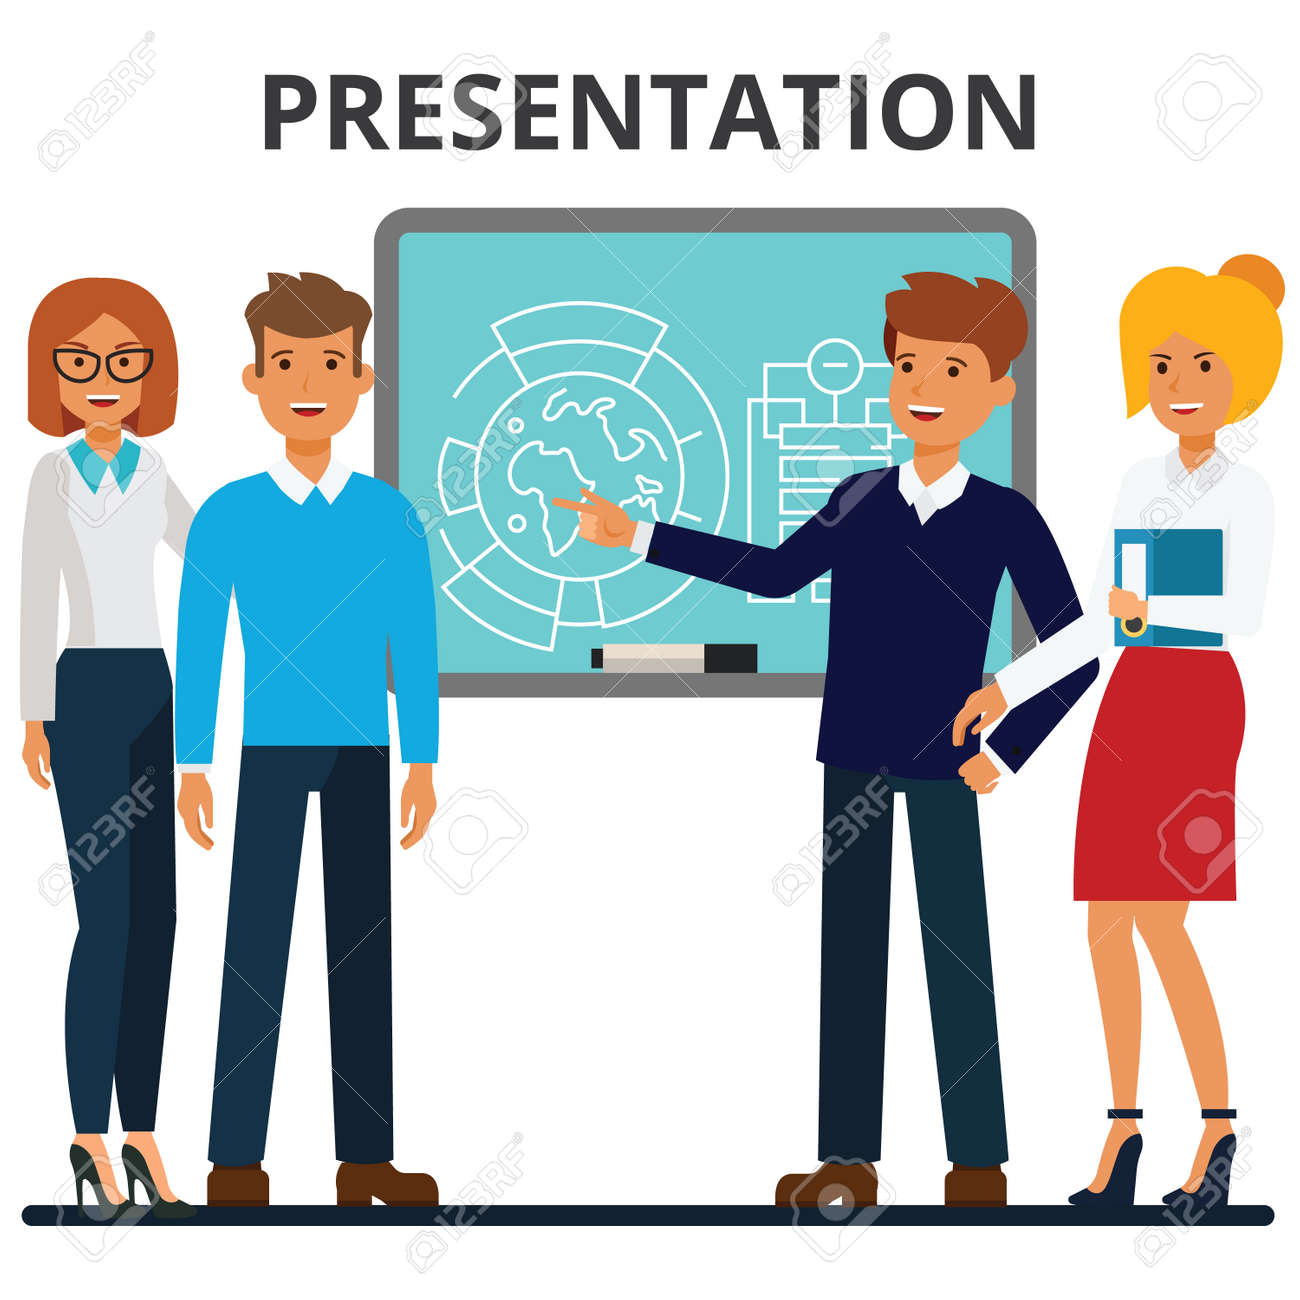 business presentation businessmen and businesswomen meeting rh 123rf com  free clipart images for business presentations